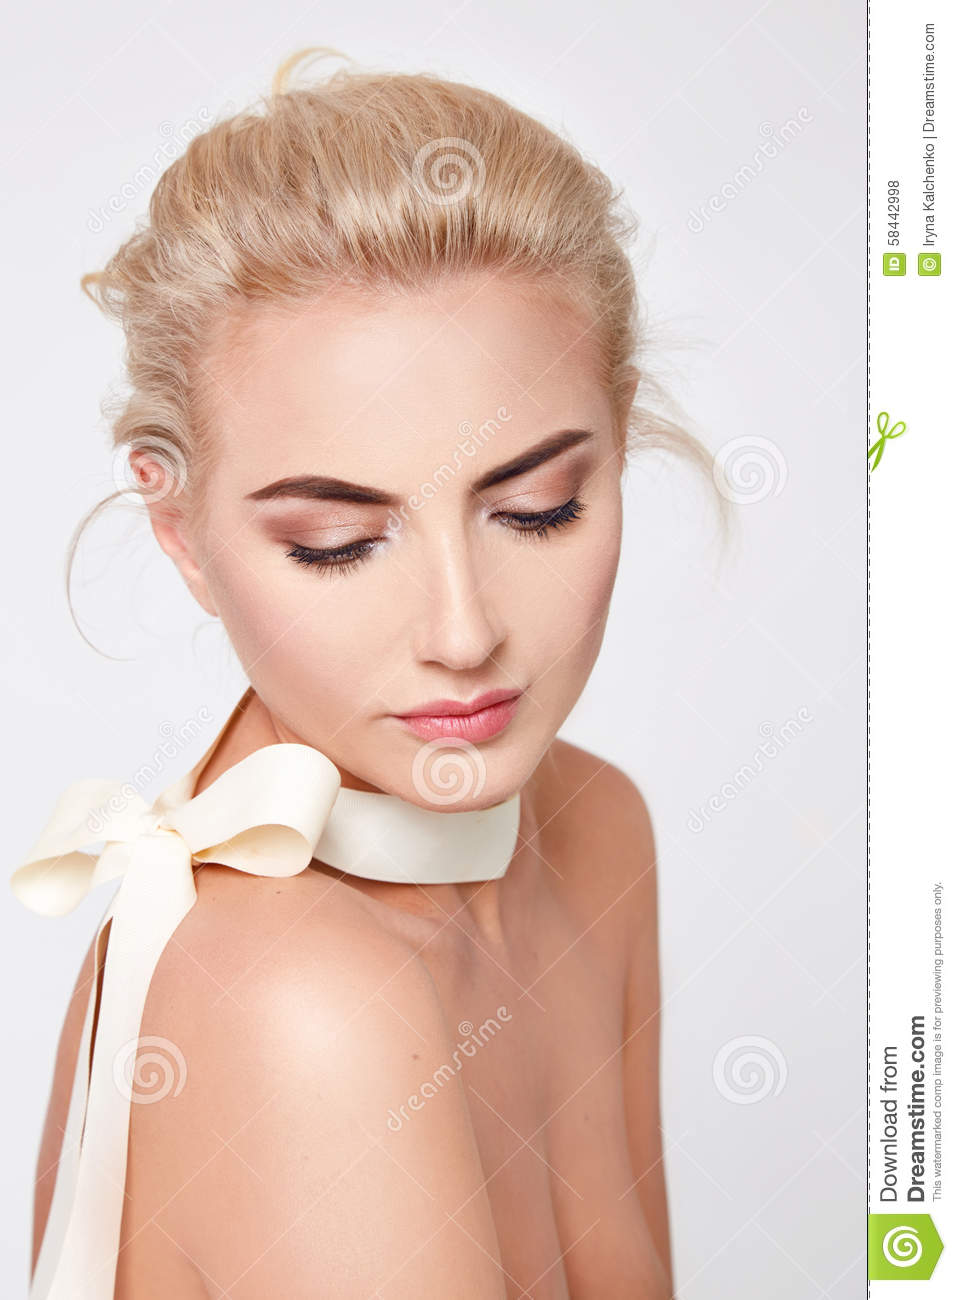 Beautiful Blond Woman Natural Makeup Nude Body Shape Stock Photo - Image 58442998-7328